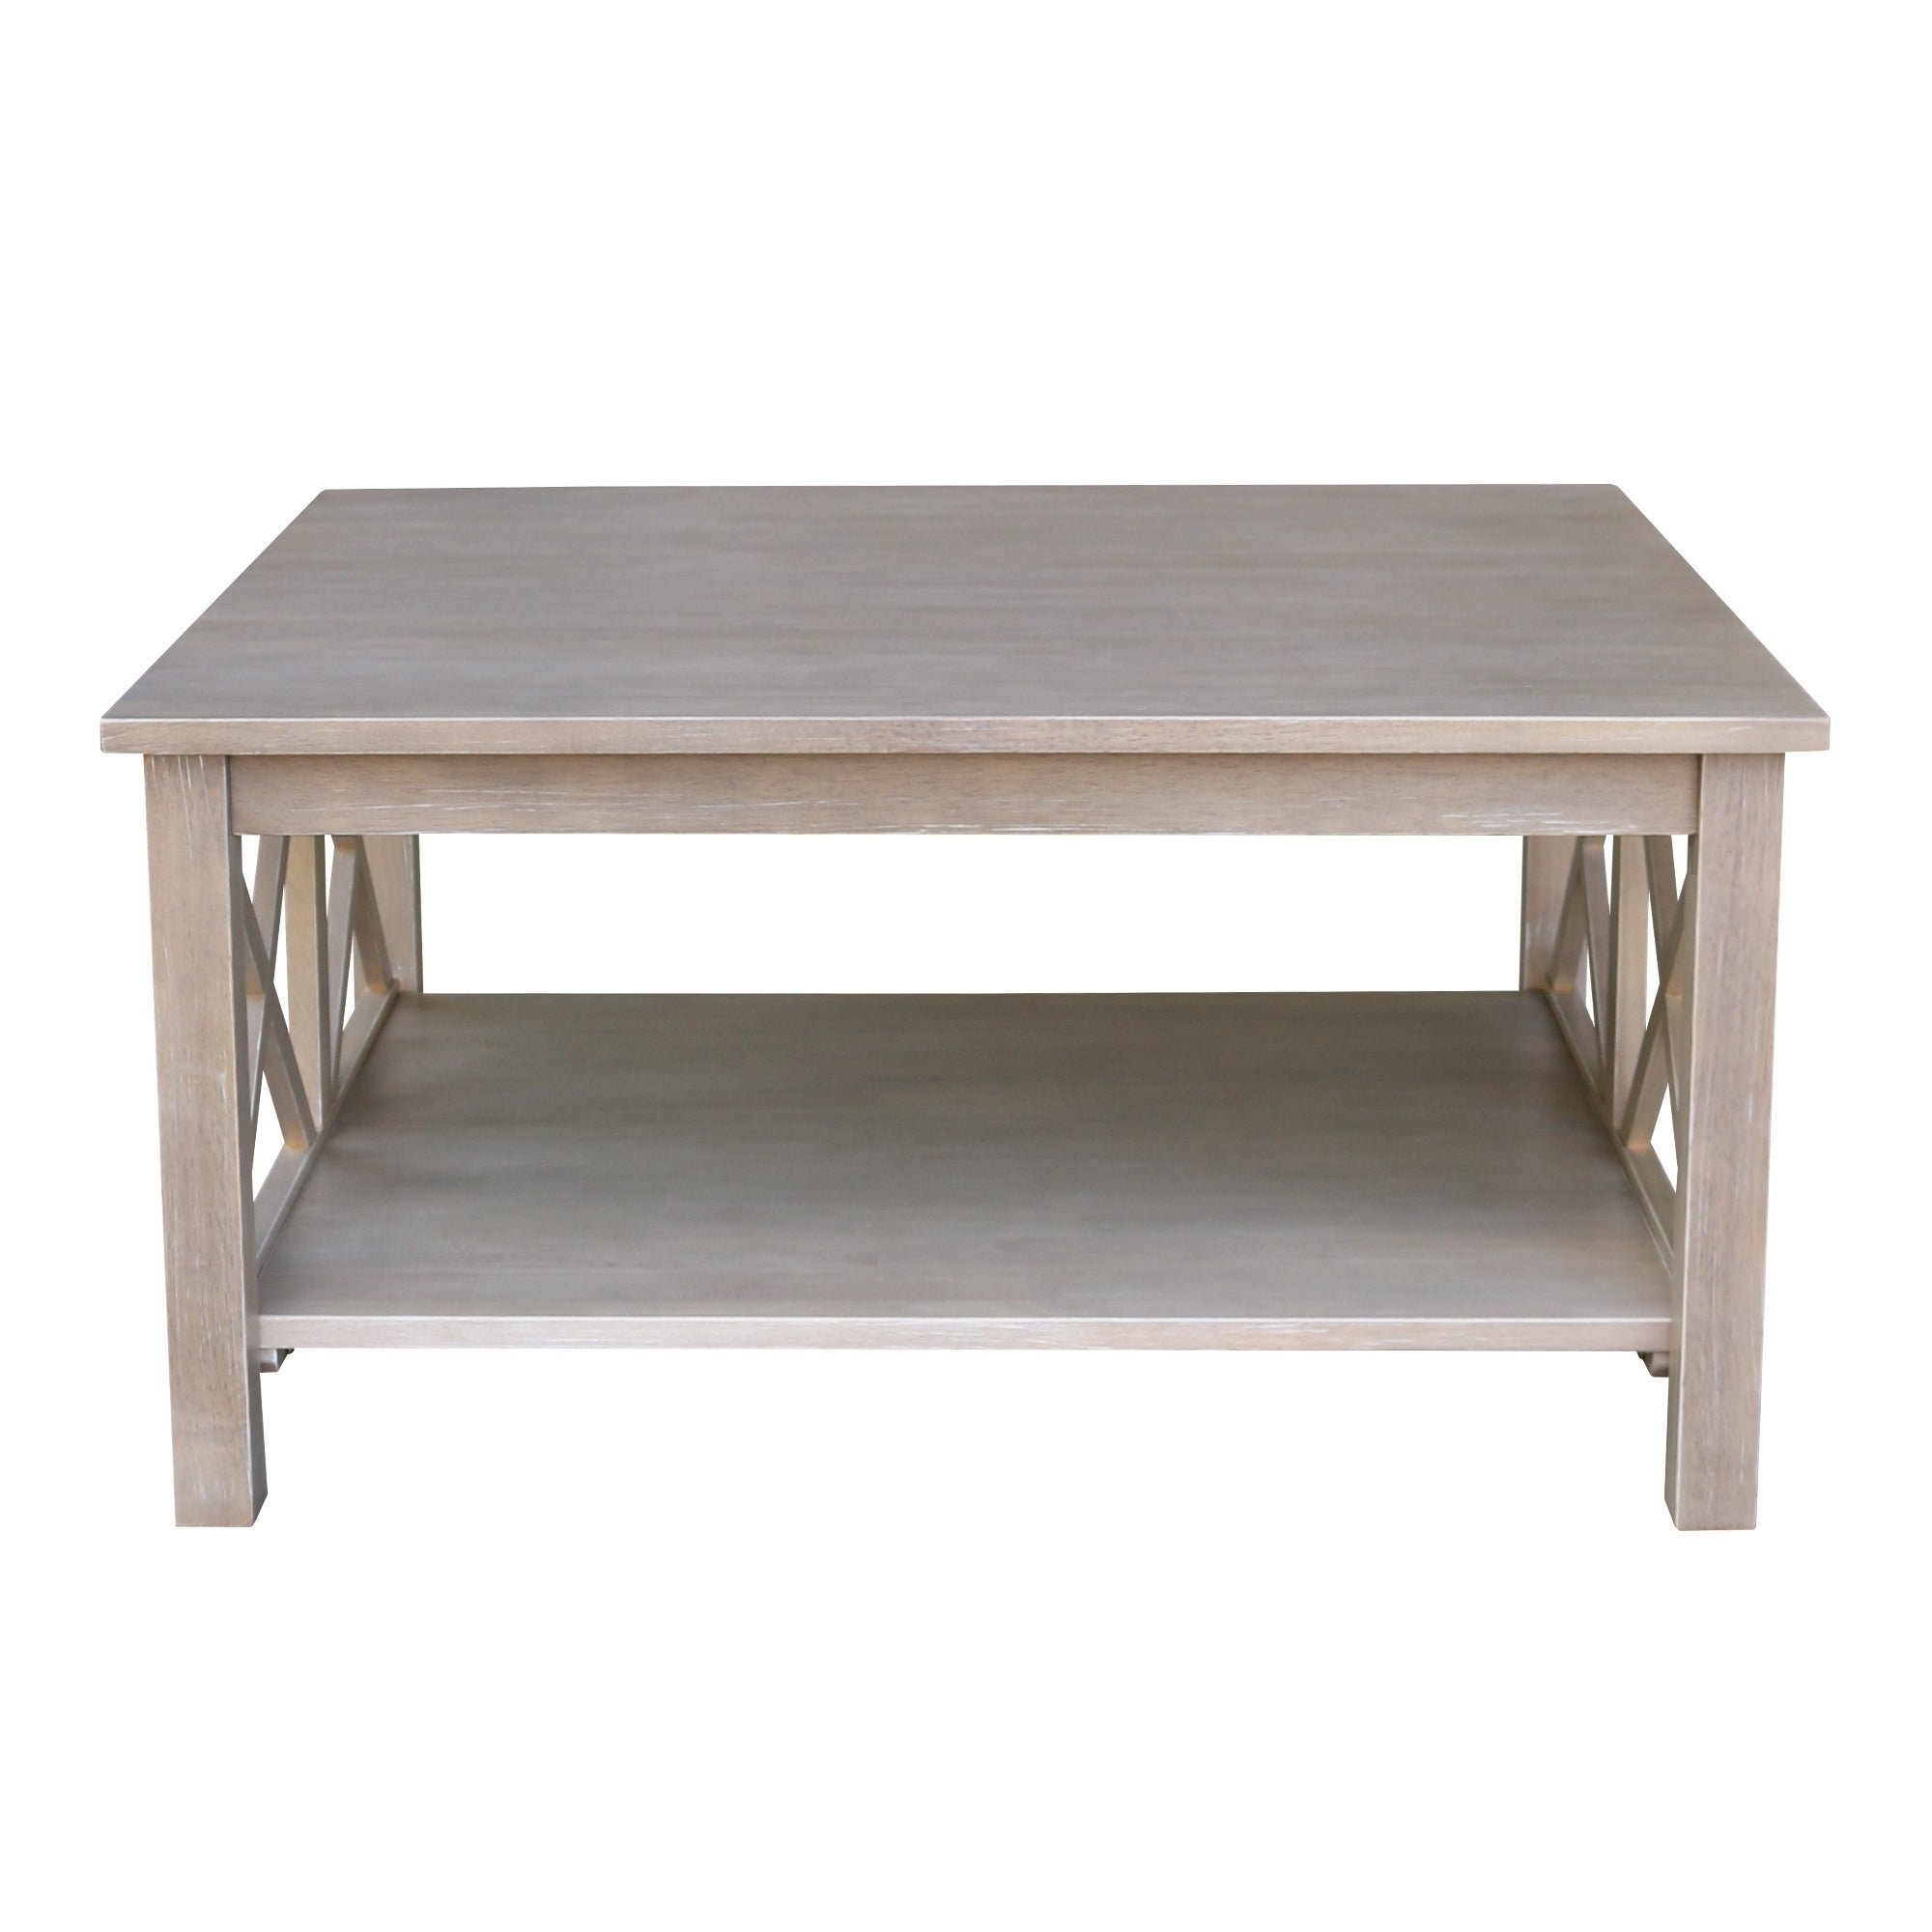 Most Popular 'hampton' Unfinished Solid Parawood Square Coffee Tables With Regard To International Concepts Hampton Square Coffee Table (View 2 of 20)